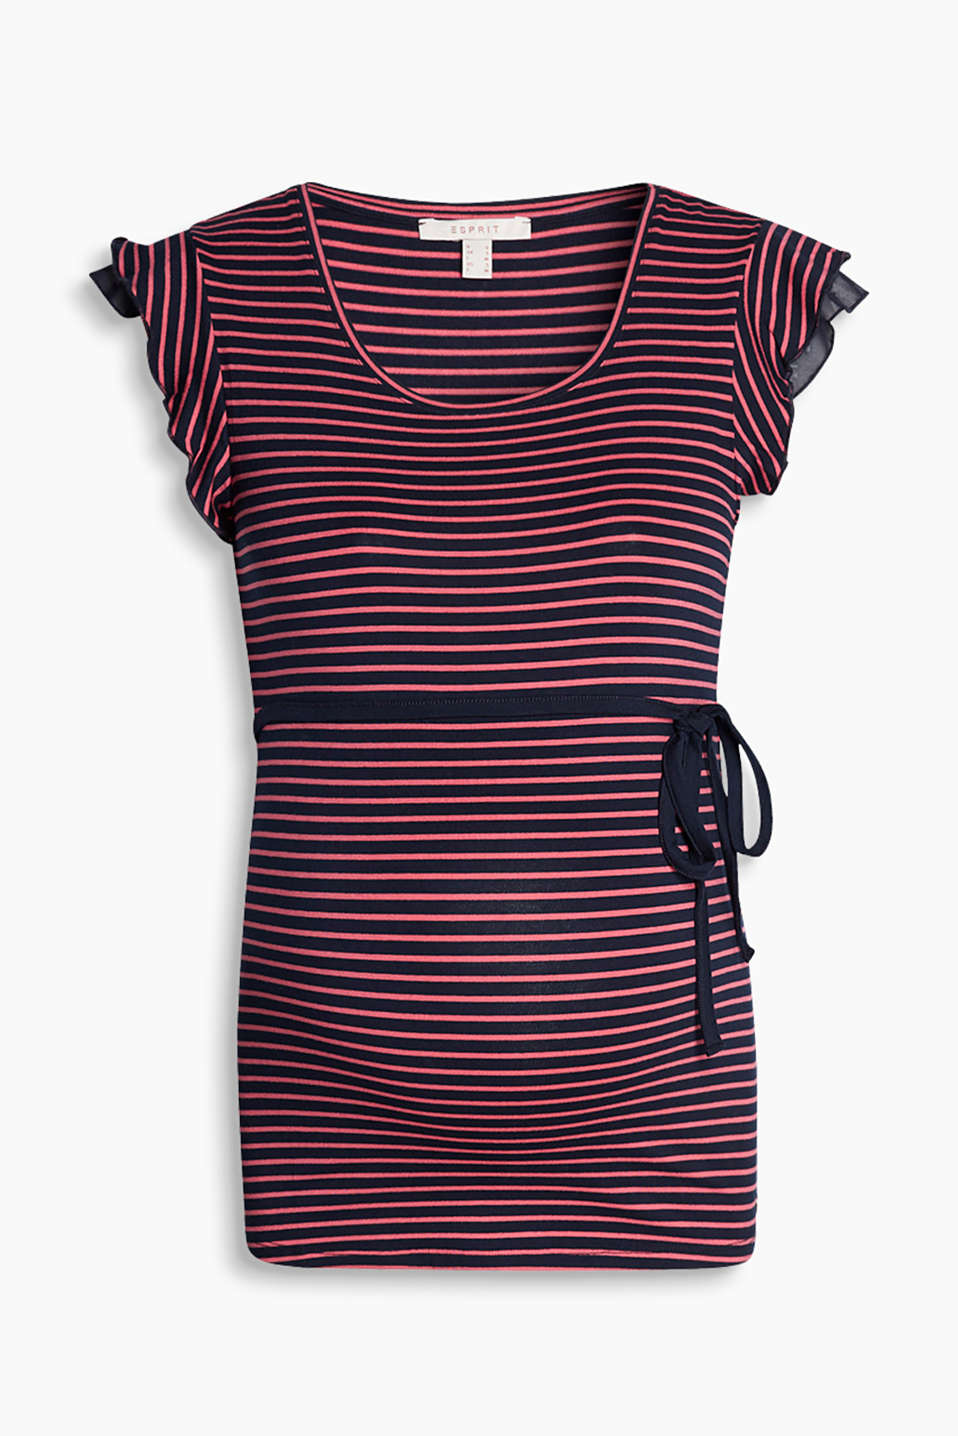 Comfy, stretchy top in fluid jersey with stripes, ruffles and a tie-around belt